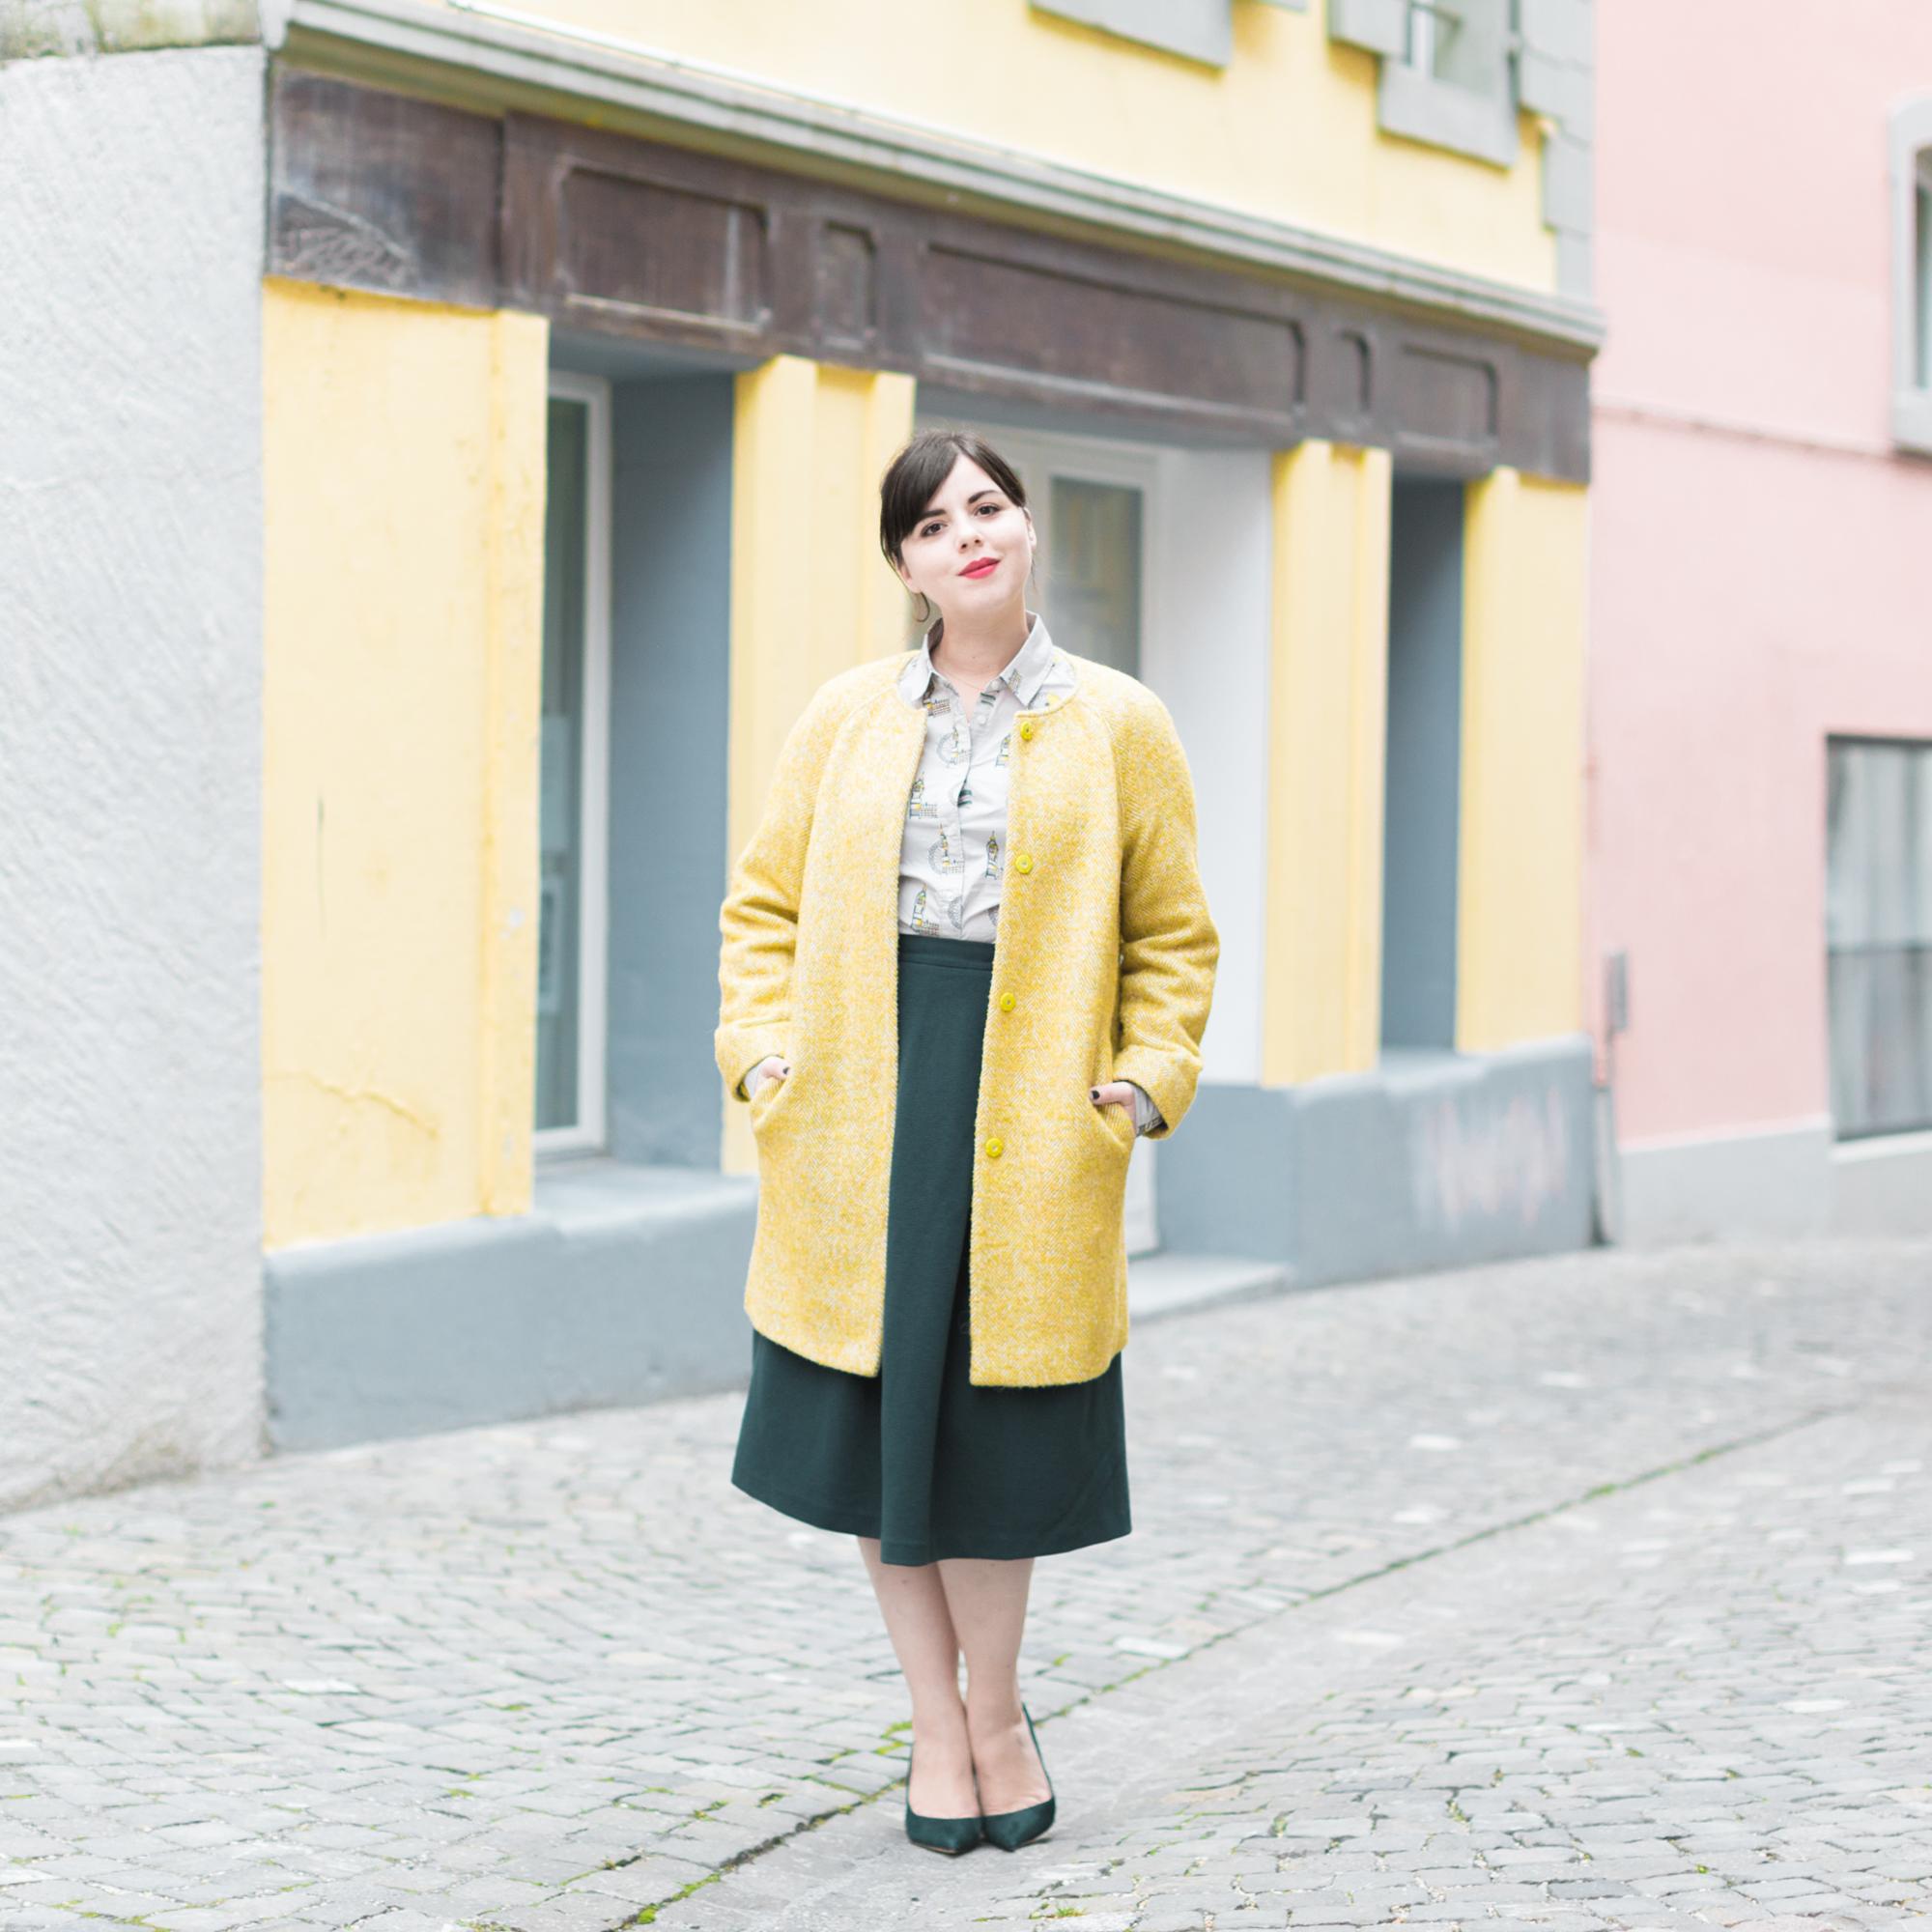 2000-boden-yellow-coat-london-print-shirt-copyright-pauline-paulinefashionblog-com-1